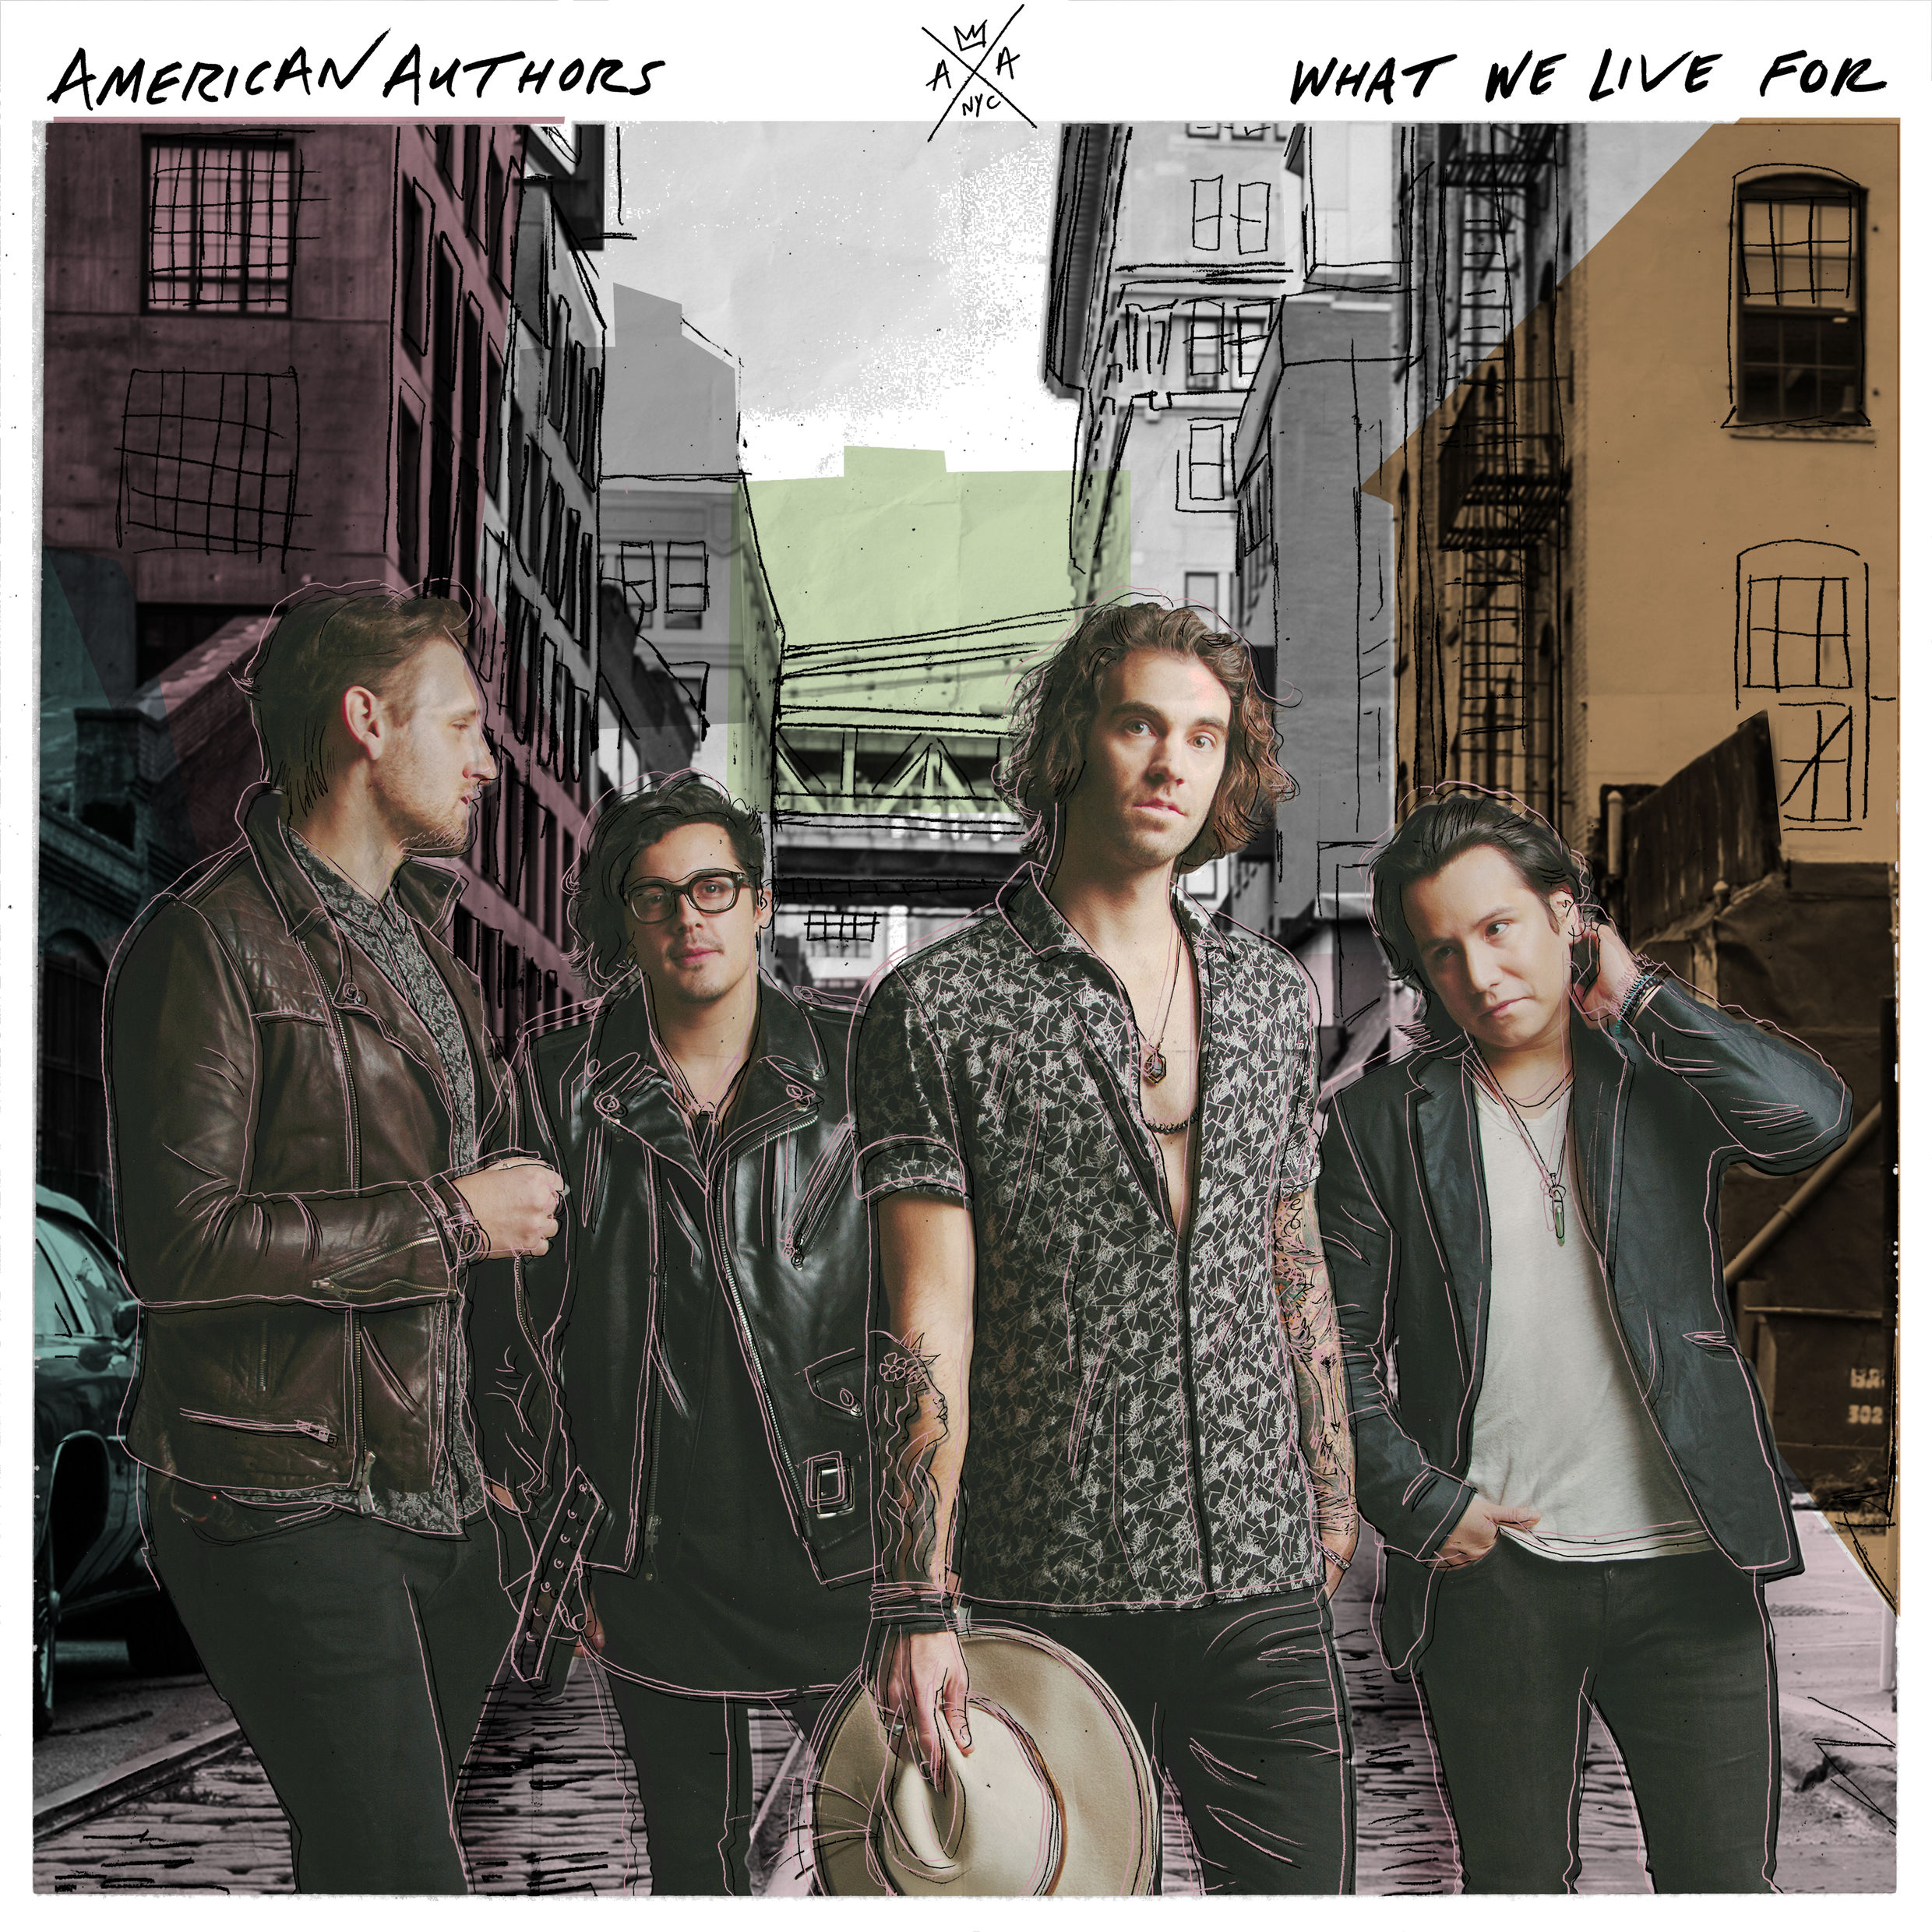 American-Authors-What-We-Live-For-2016-2480x2480.jpg